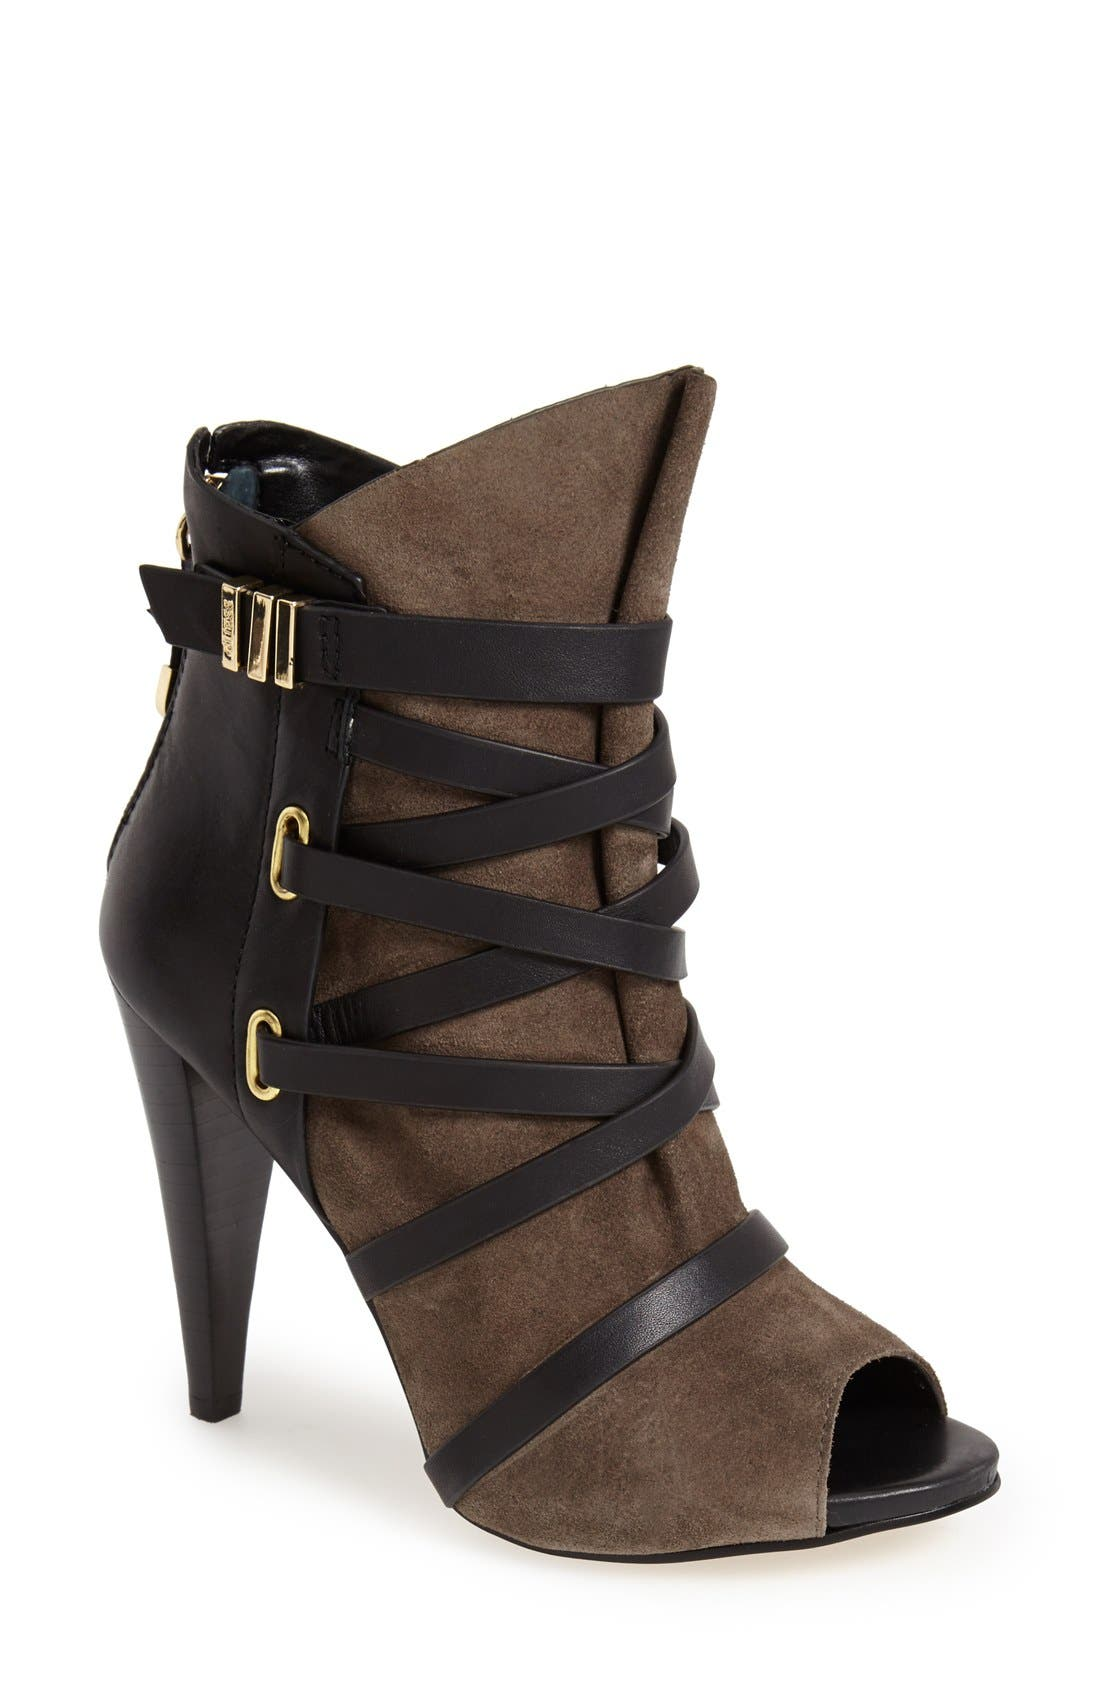 Main Image - Guess 'Candie' Peep Toe Leather Bootie (Women)